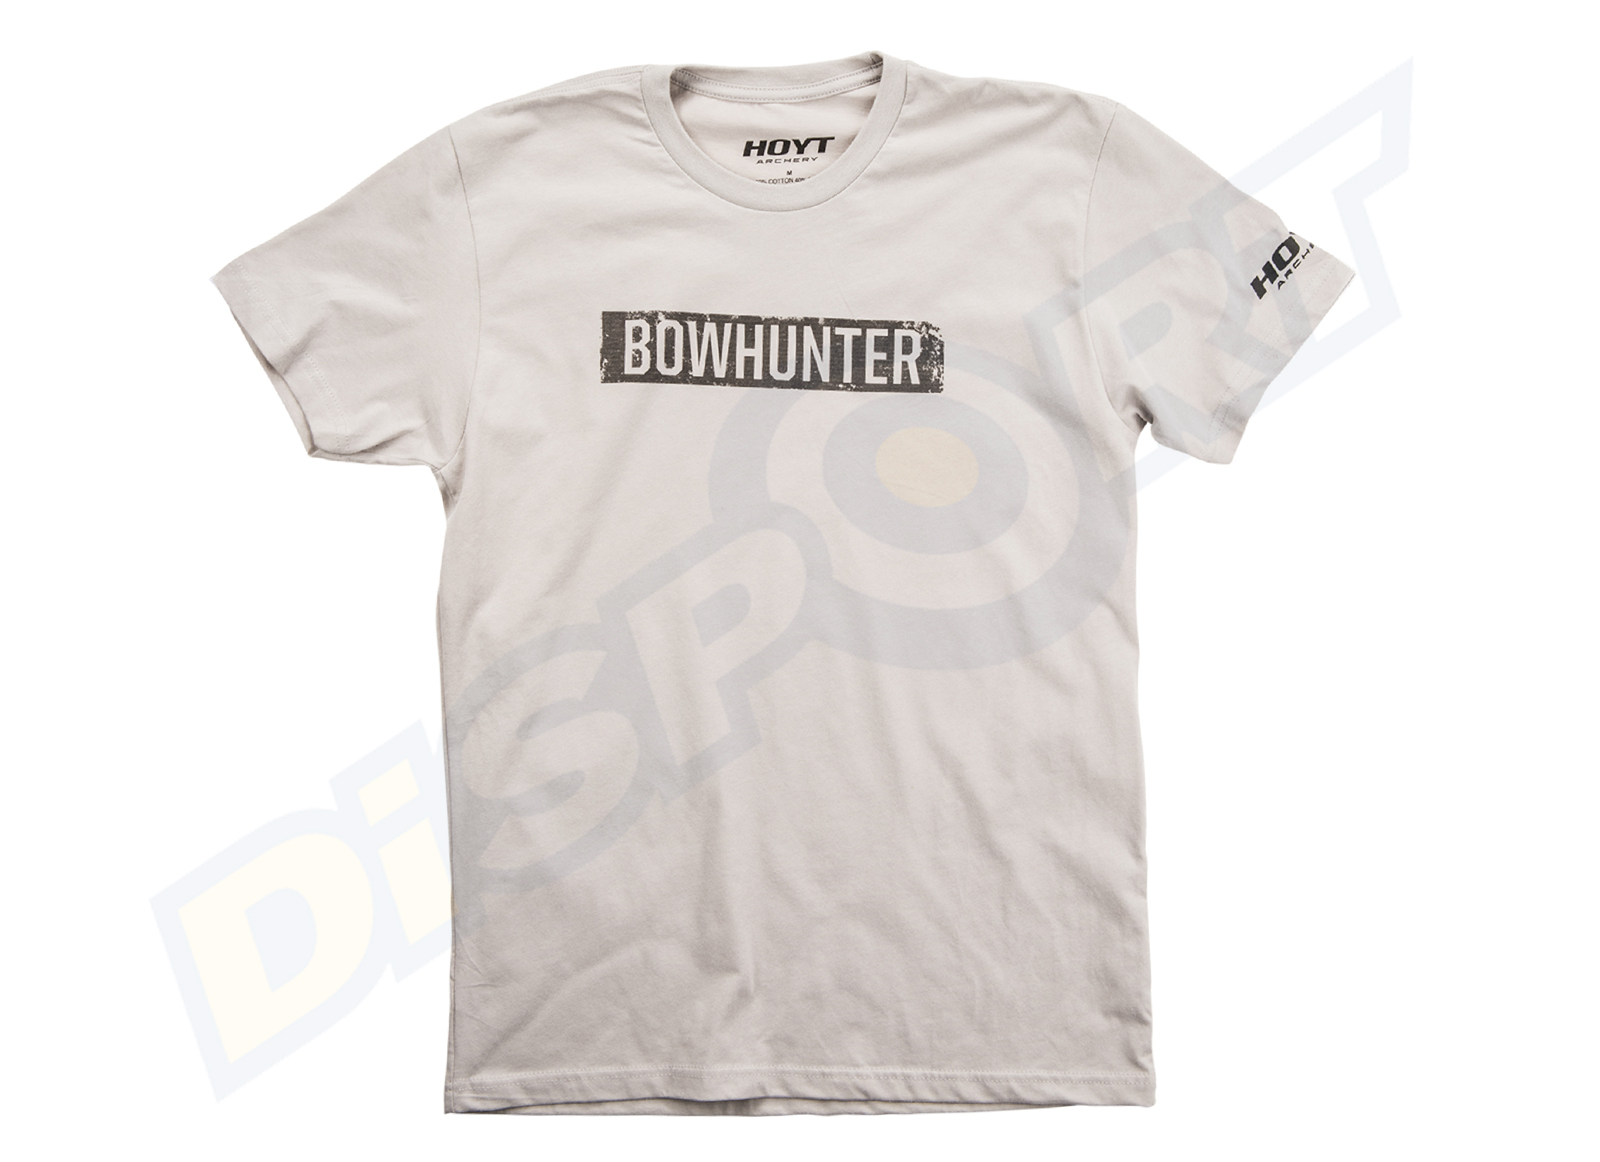 HOYT T-SHIRT UOMO BOWHUNTER